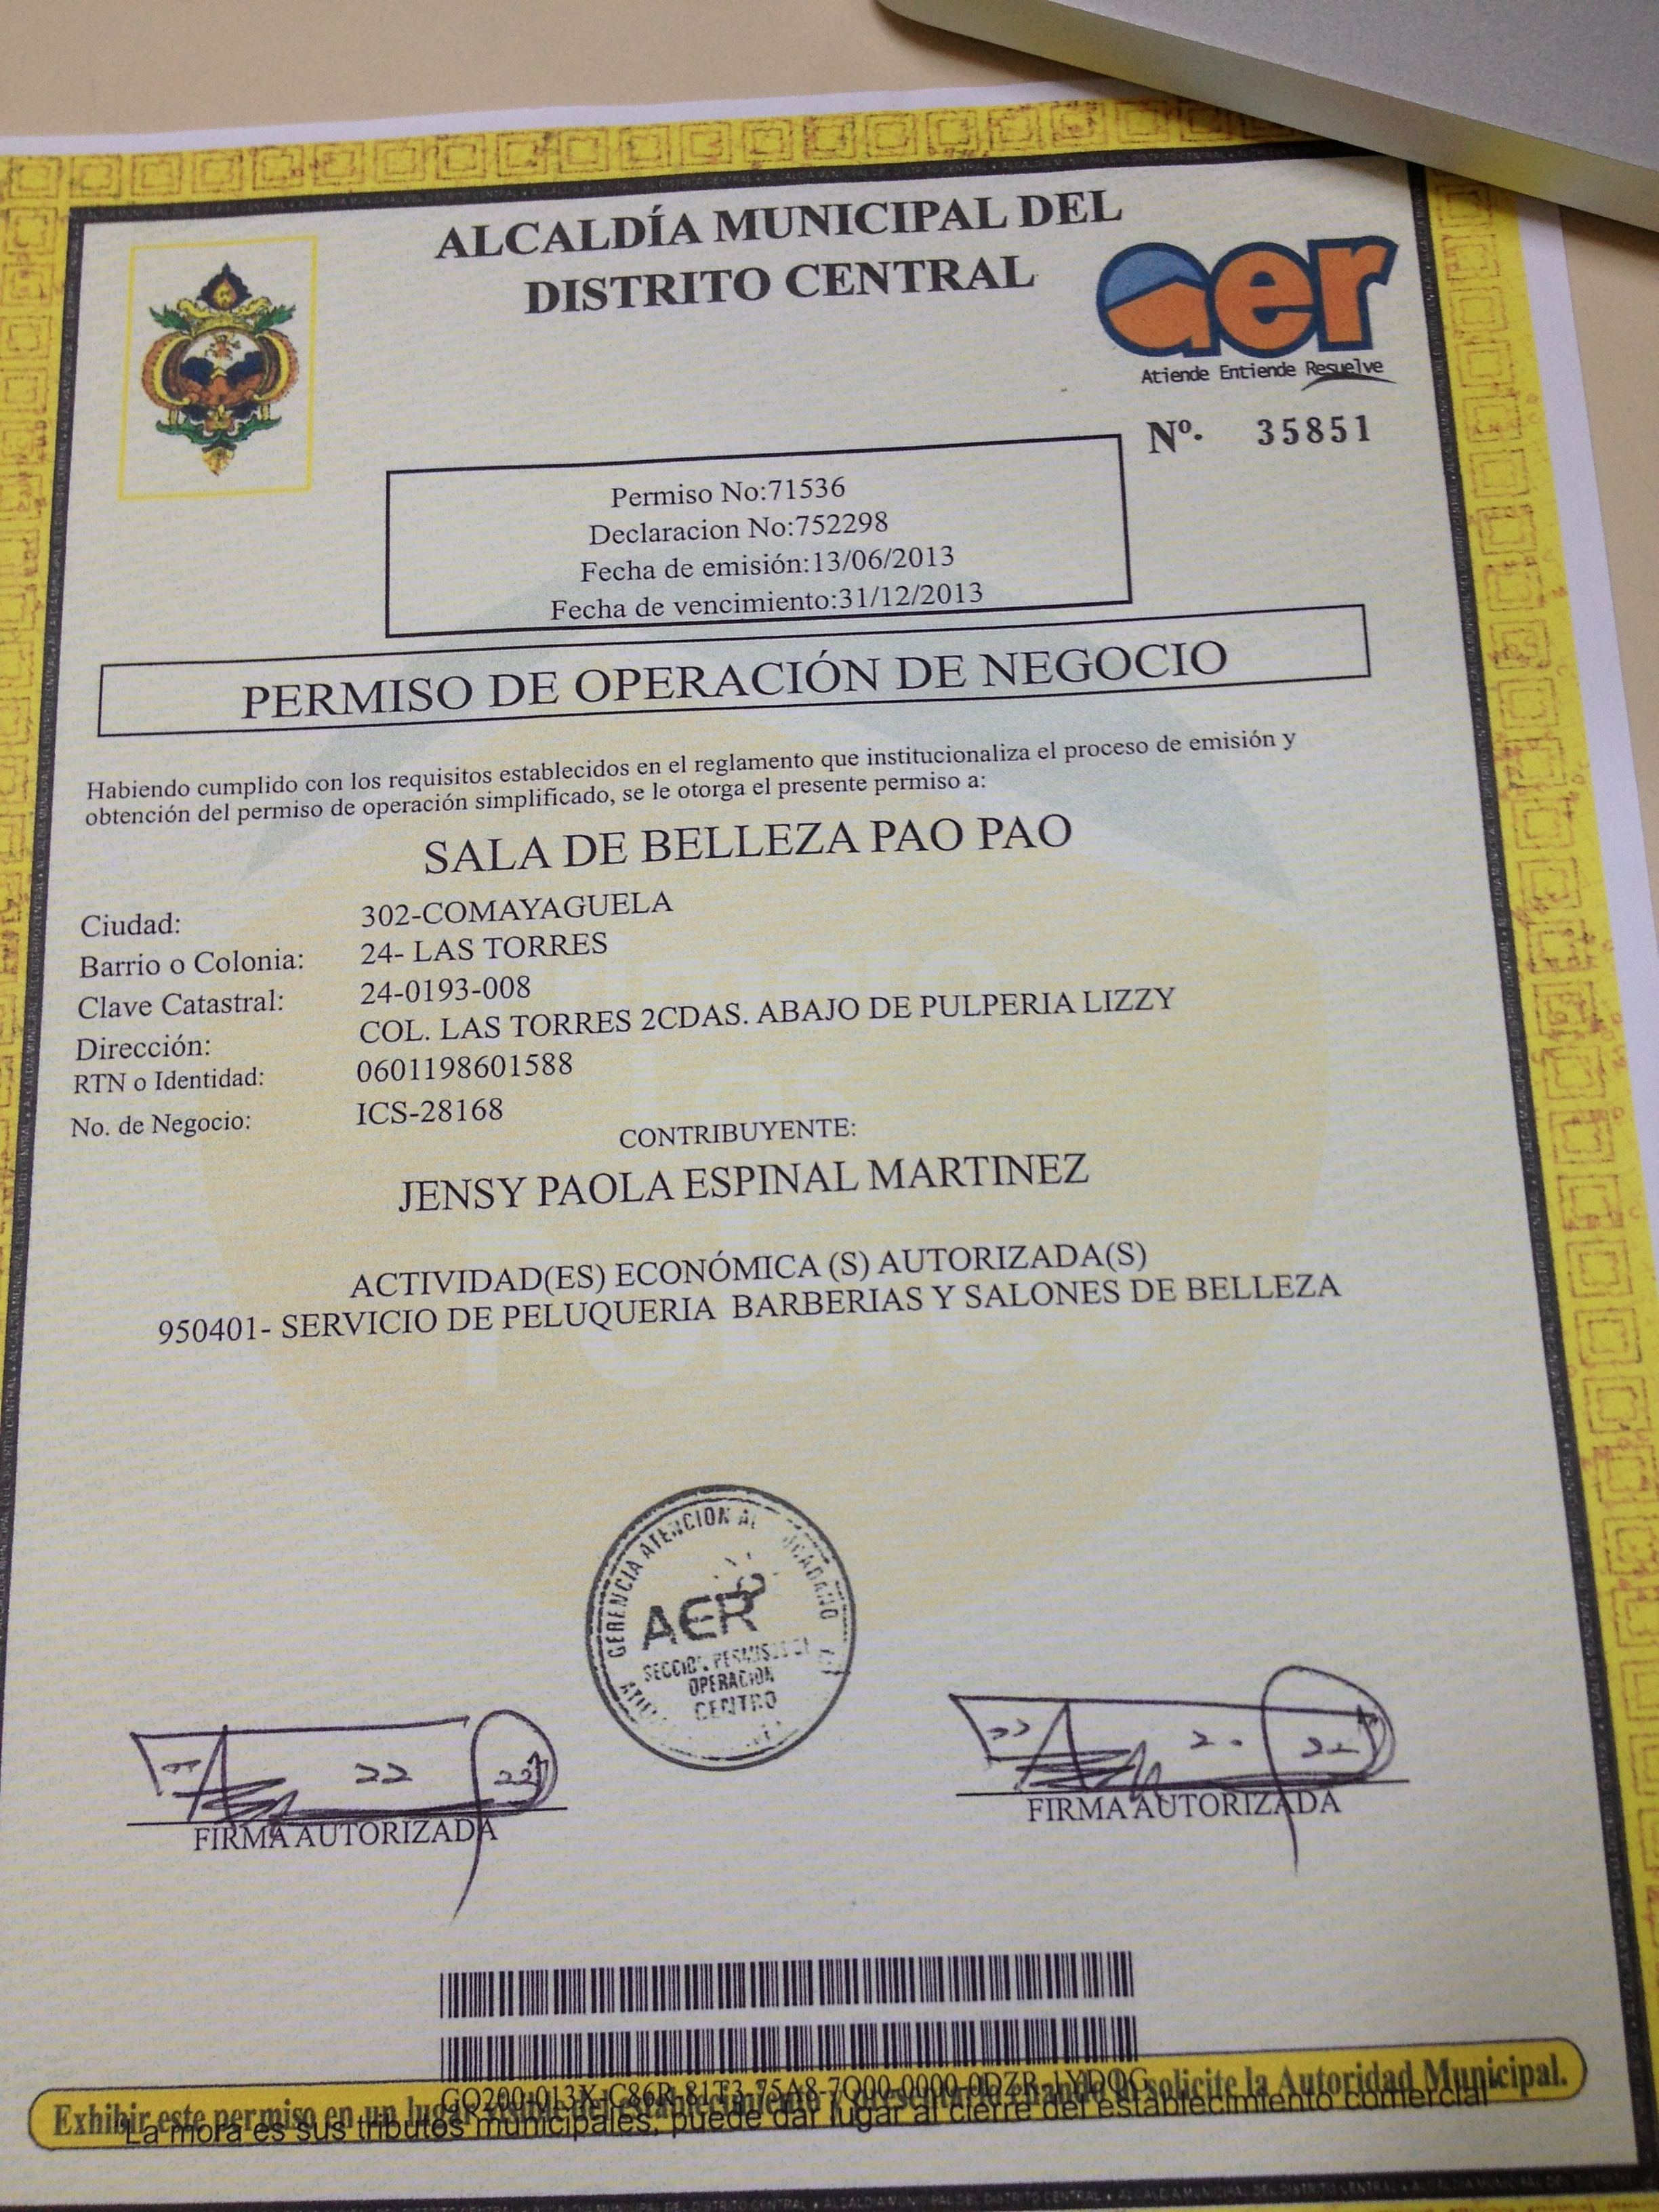 She is official! Paola's salon is registered and recognized my the government!